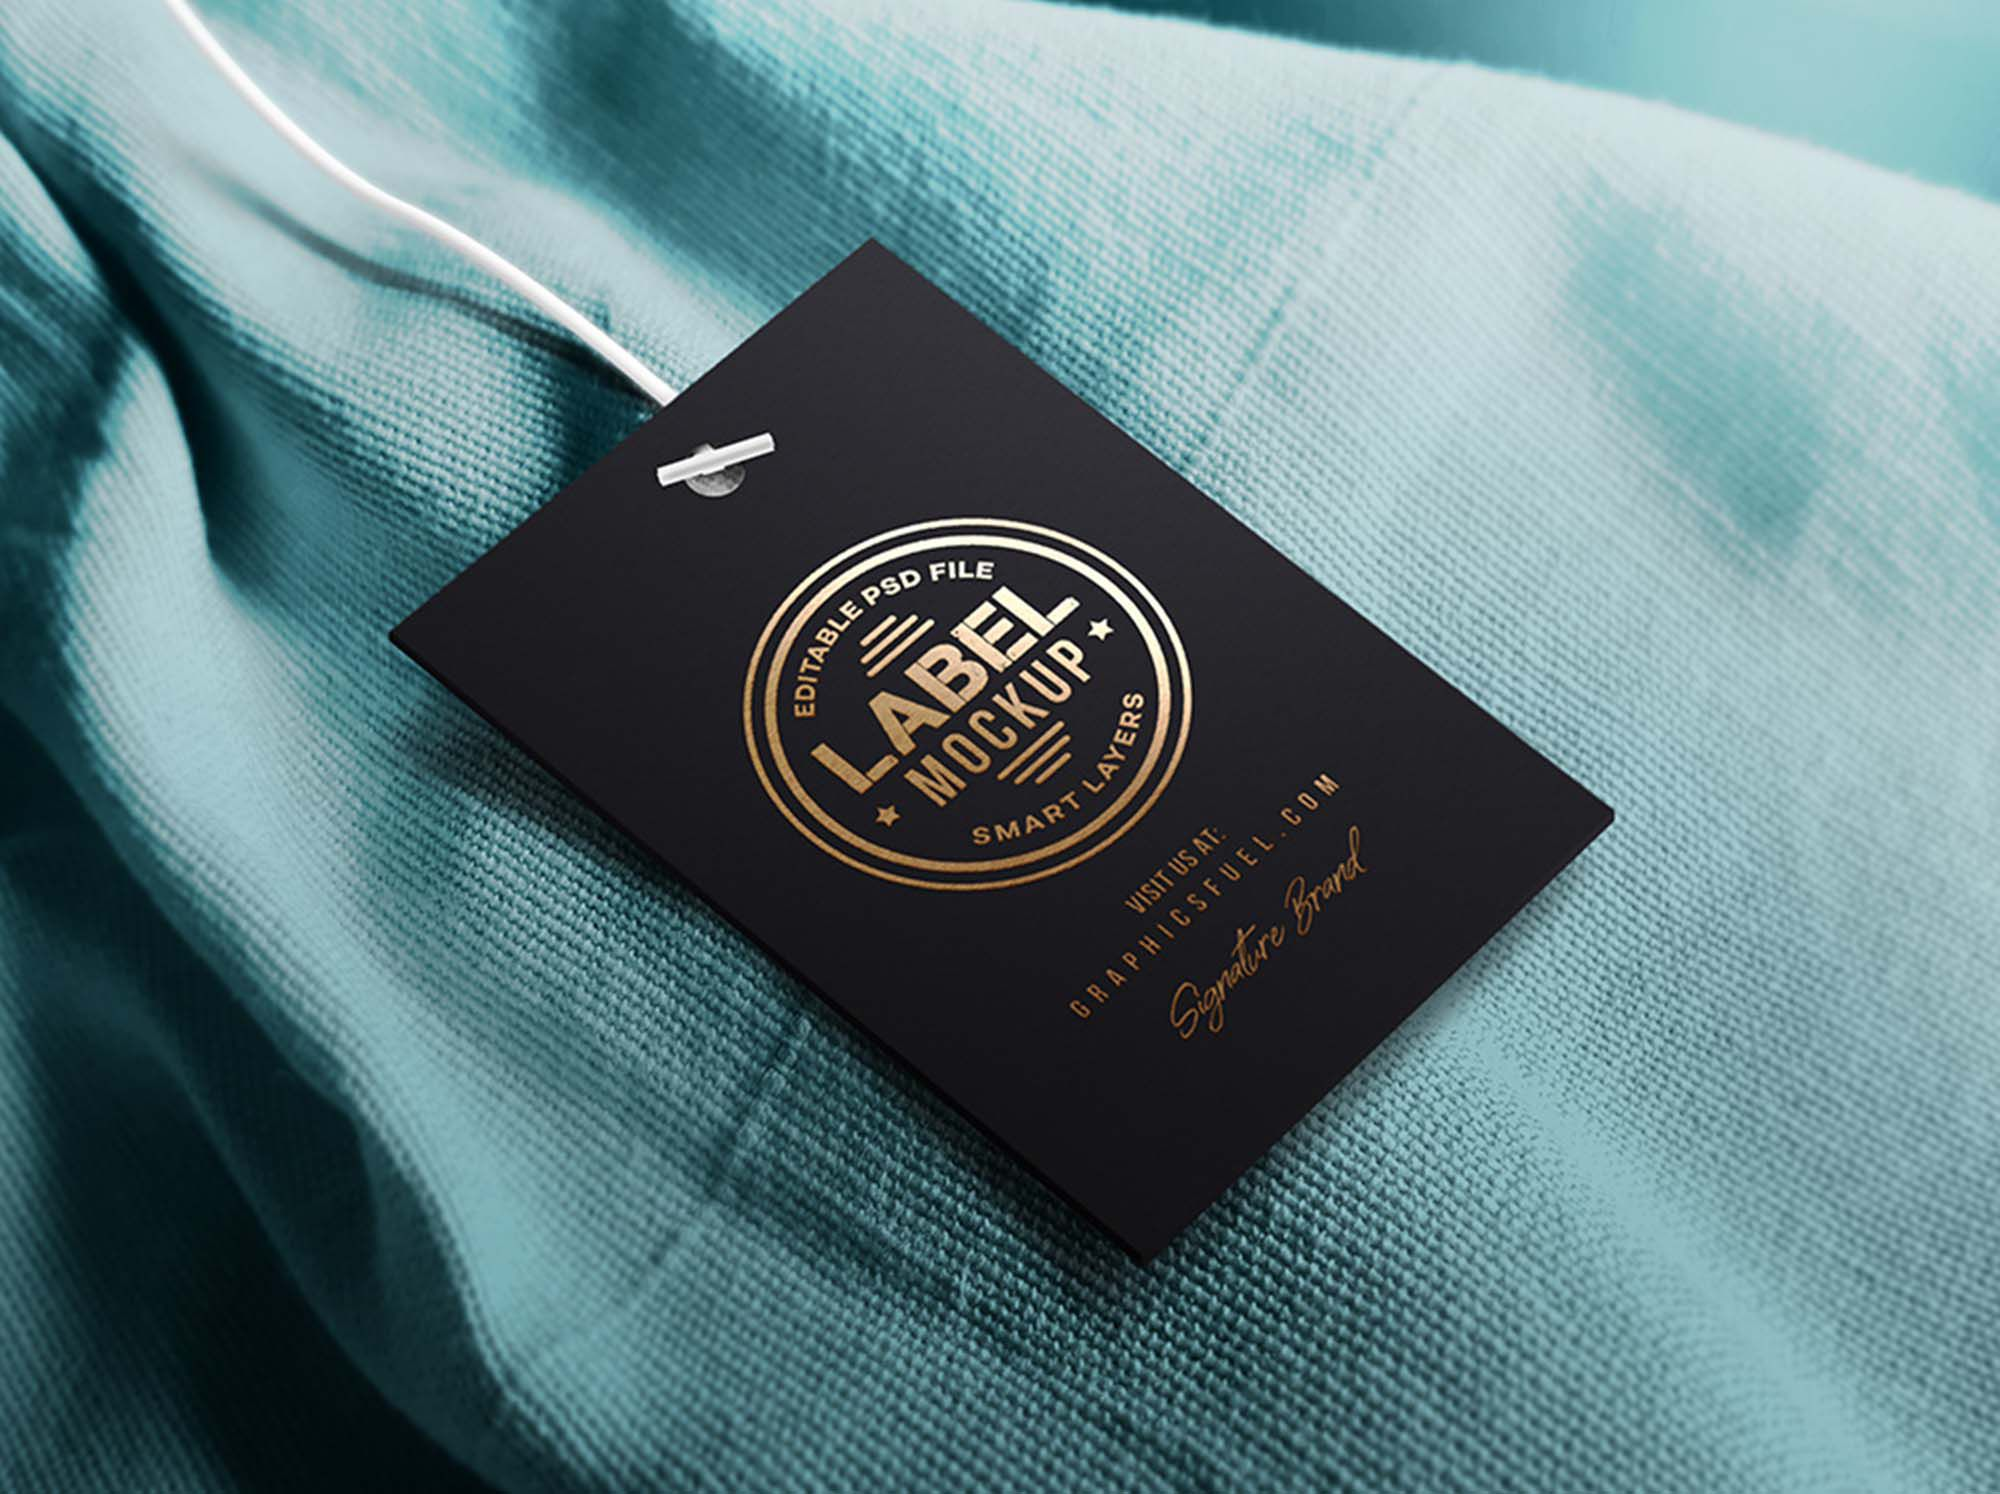 005 Amazing Free Clothing Label Design Template Concept  Templates DownloadFull